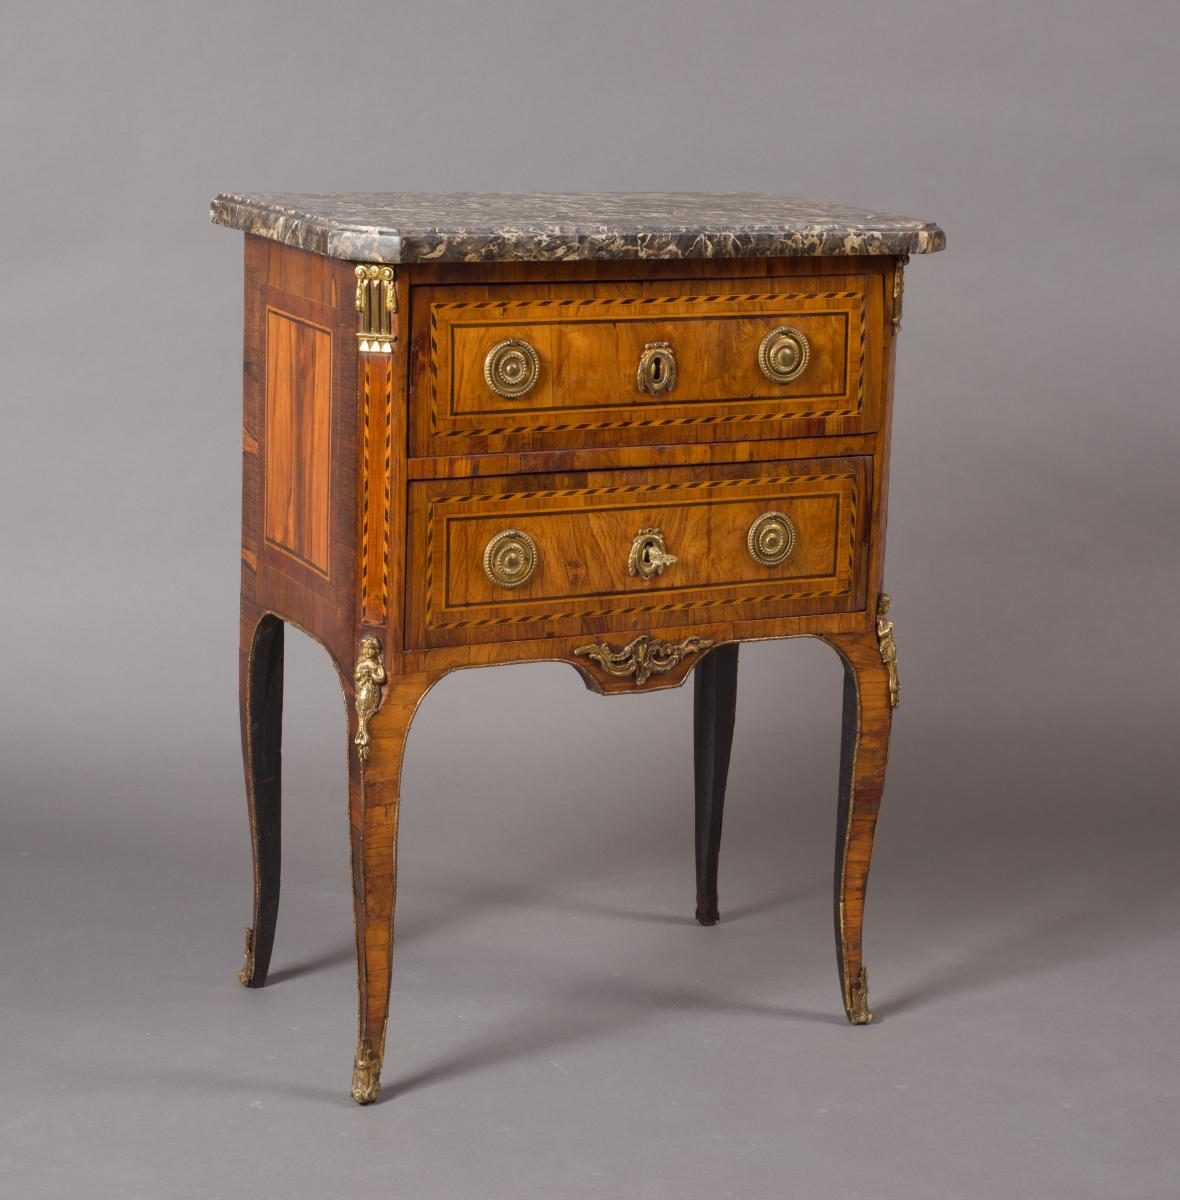 Gilt-bronze Mounted Veneered Commode, 18th Century Transition Period